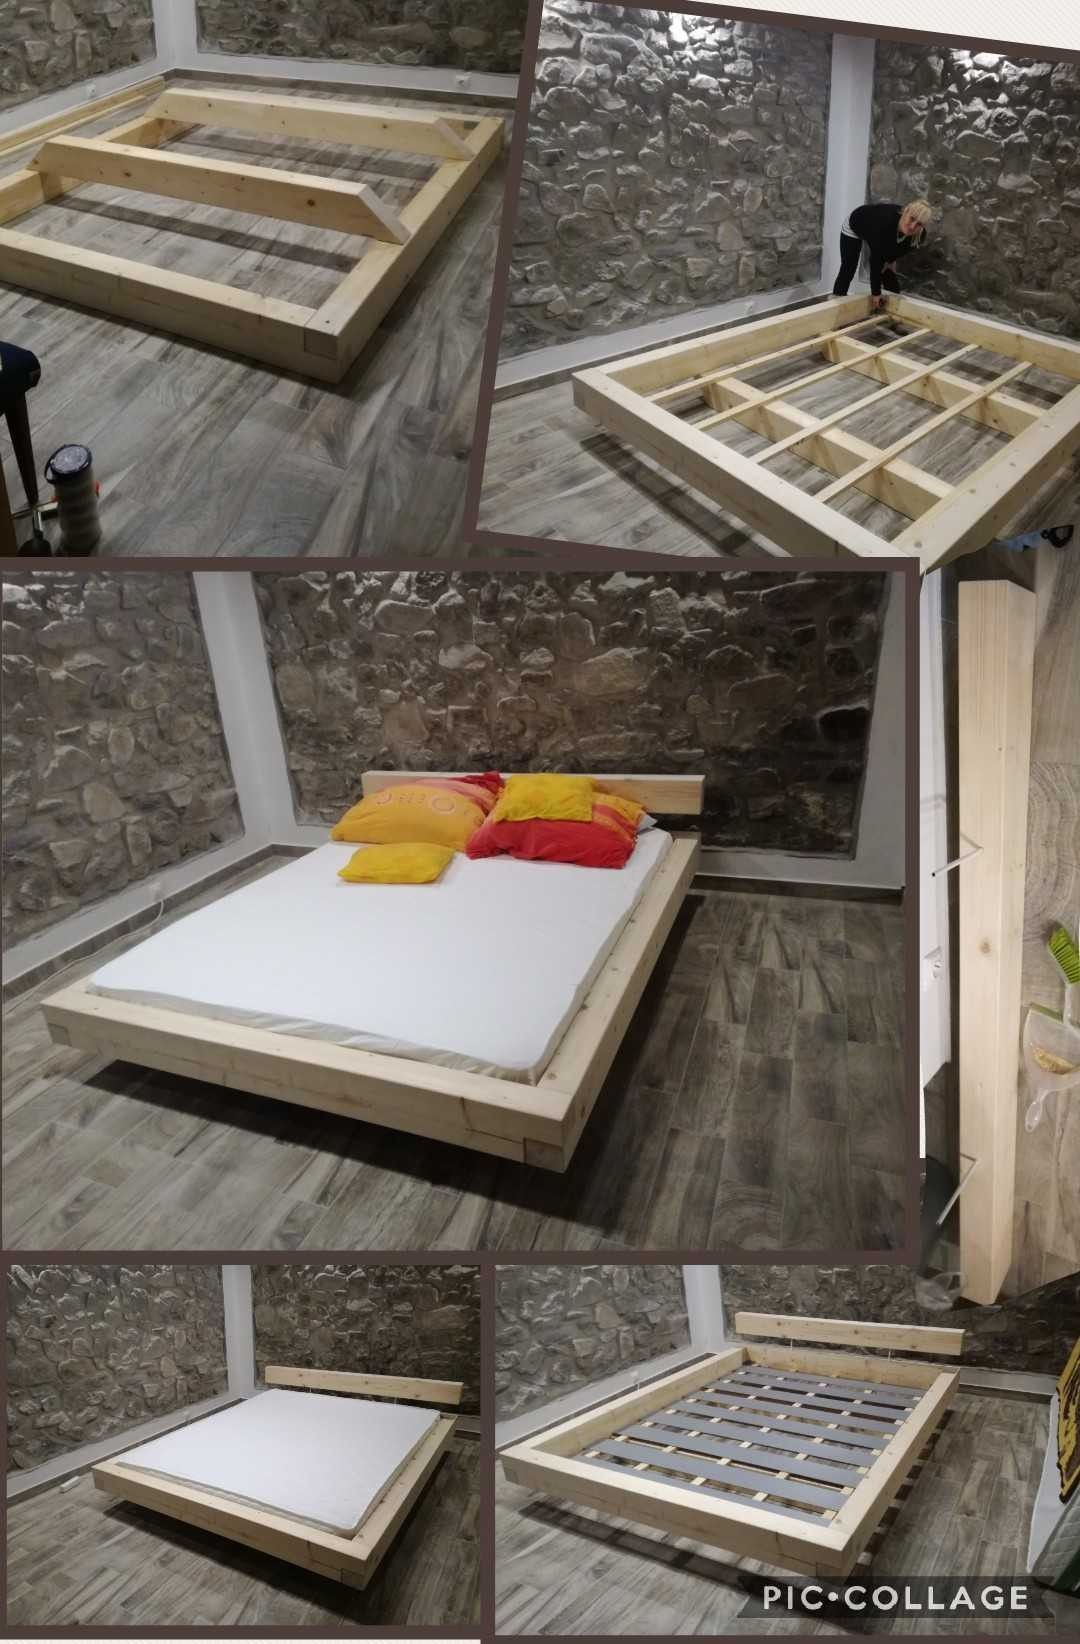 Floating Wood Bed 160x200 10x16cm Pine Wood Diybedframes Bed Ontwerpen Zwevend Bed Japanse Bed